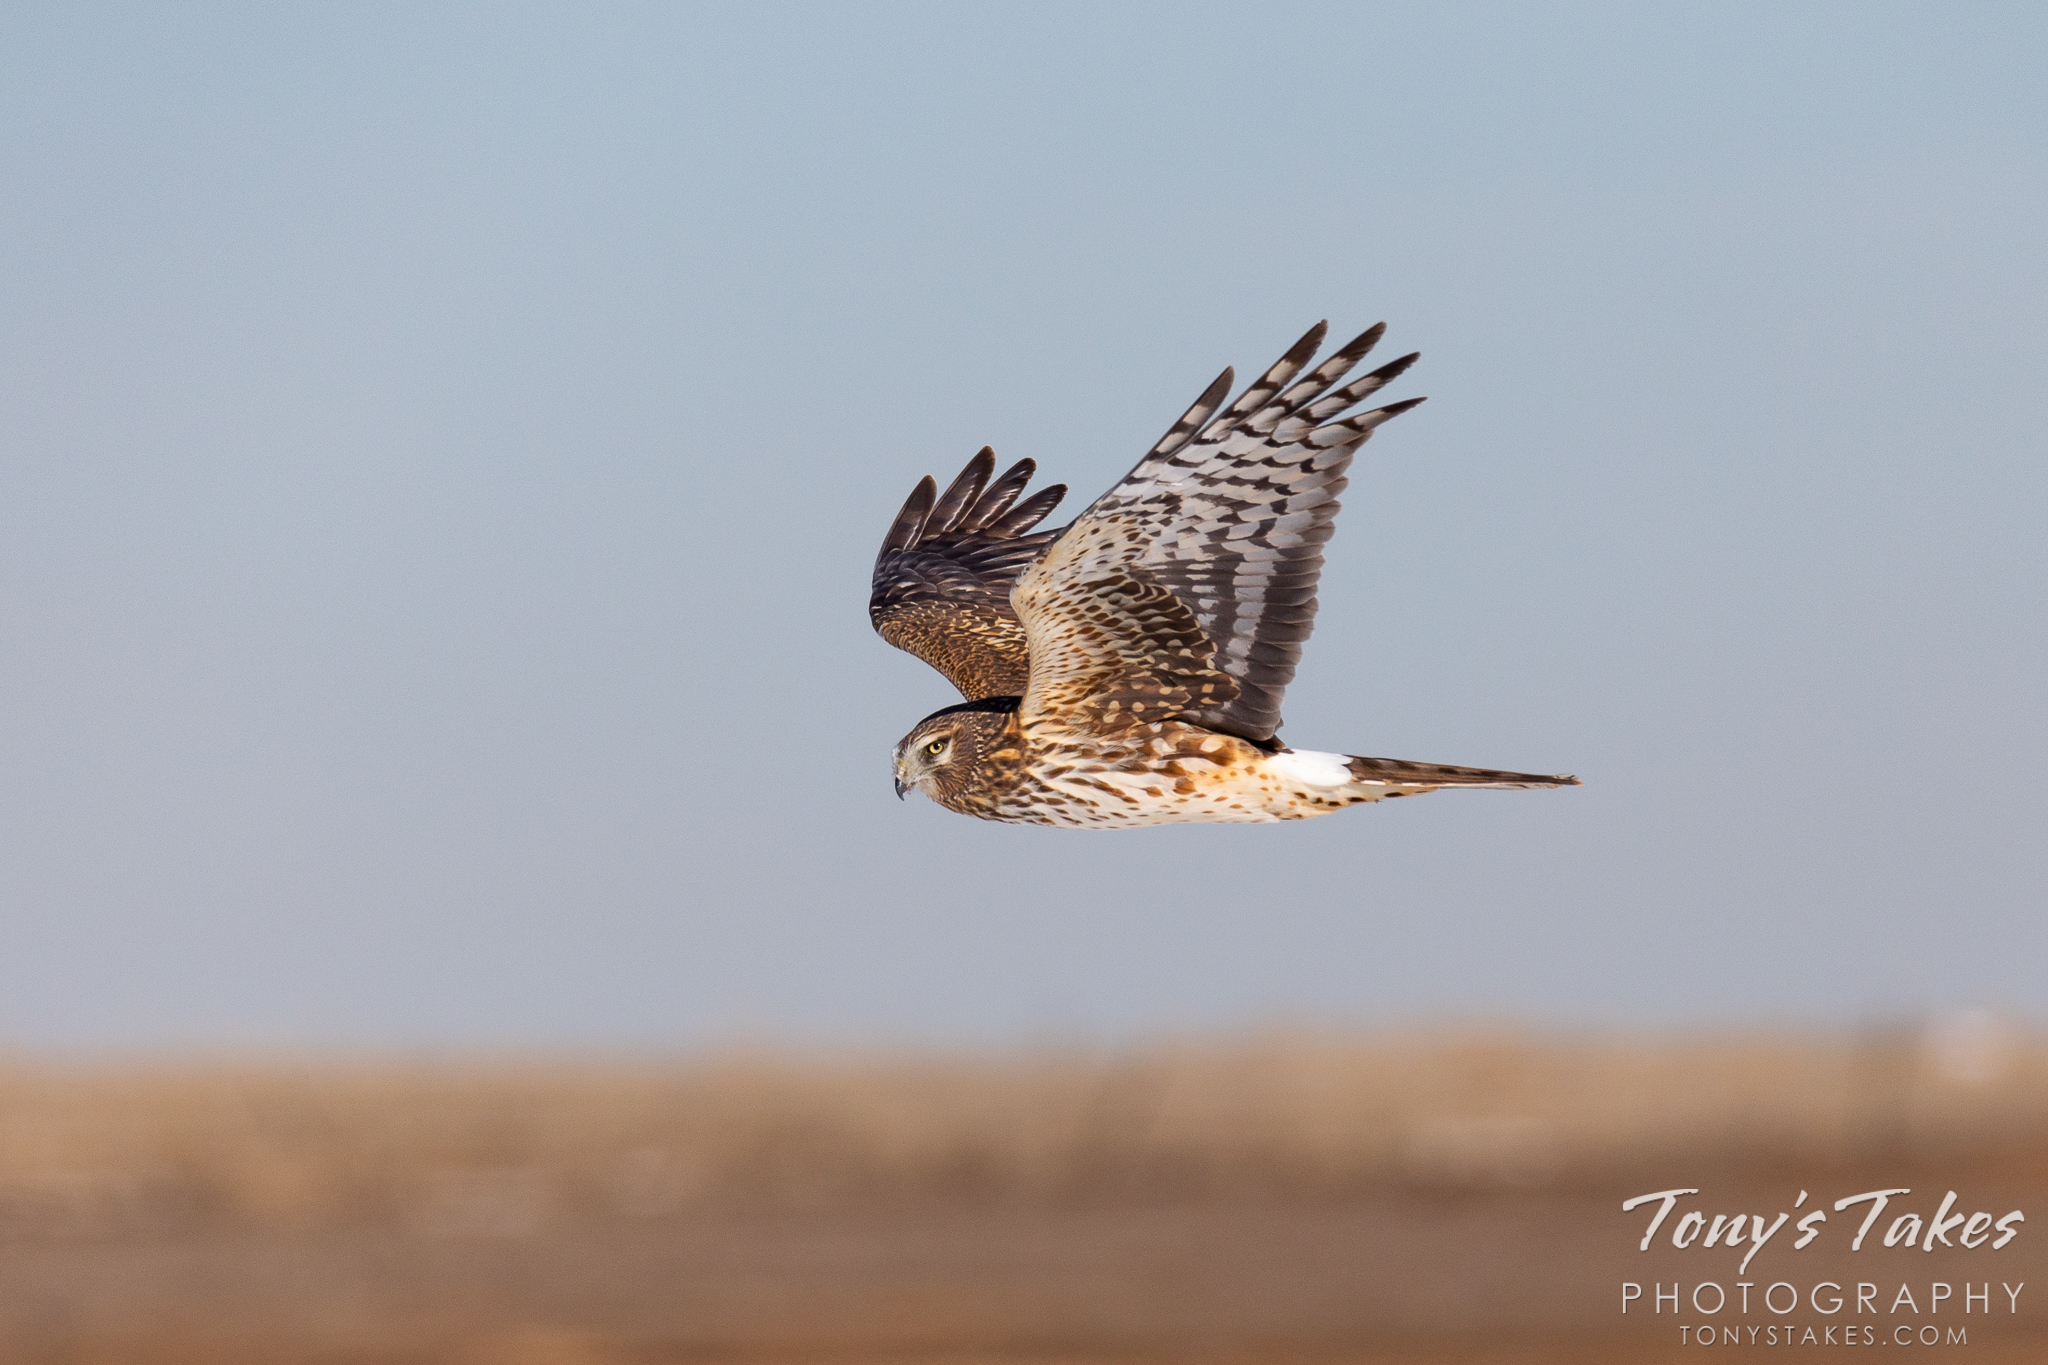 A female northern harrier keeps close watch on the photographer while patrolling the Great Plains. (© Tony's Takes)